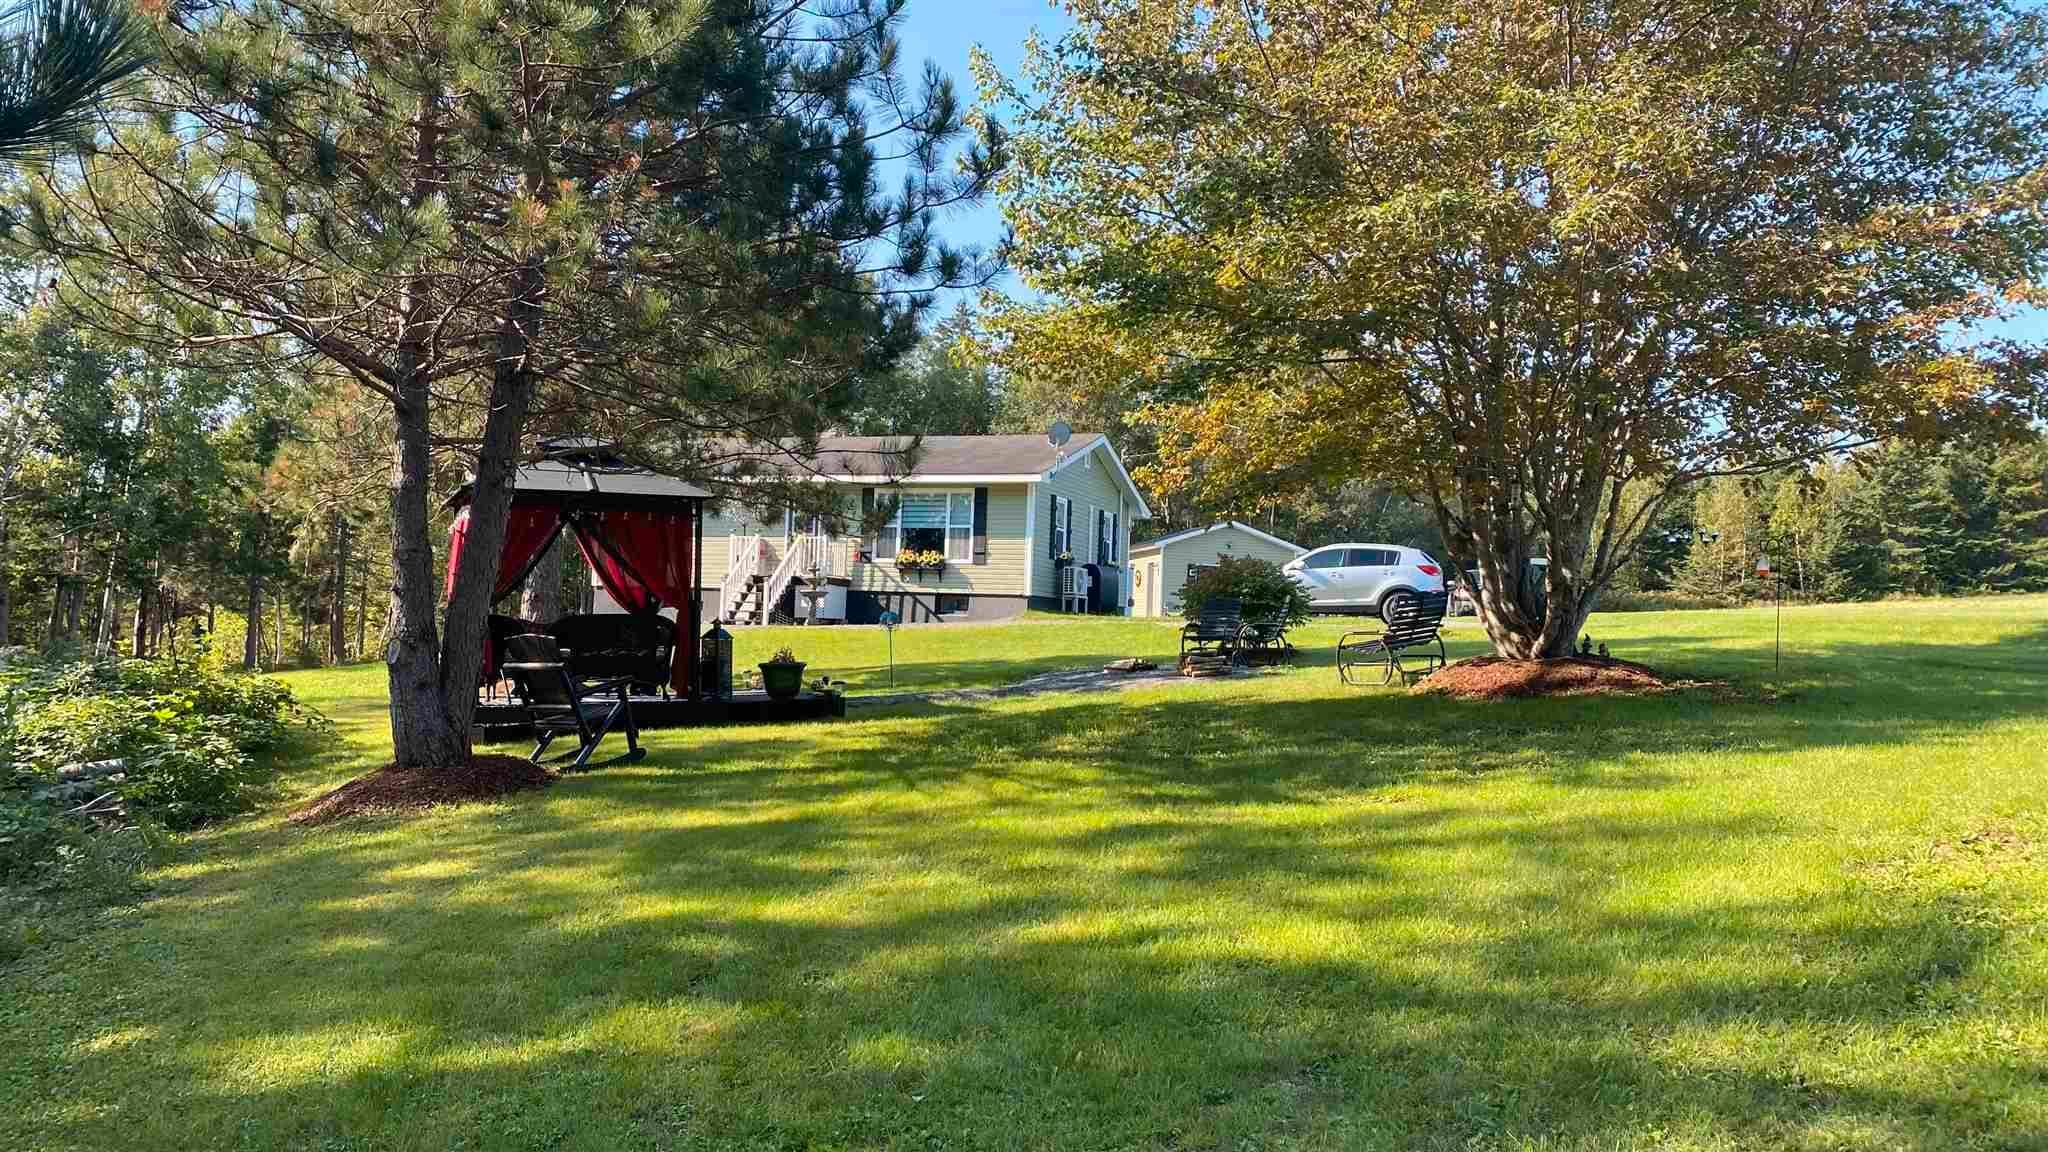 Main Photo: 17 Sutherland's Lane in Scotsburn: 108-Rural Pictou County Residential for sale (Northern Region)  : MLS®# 202124344